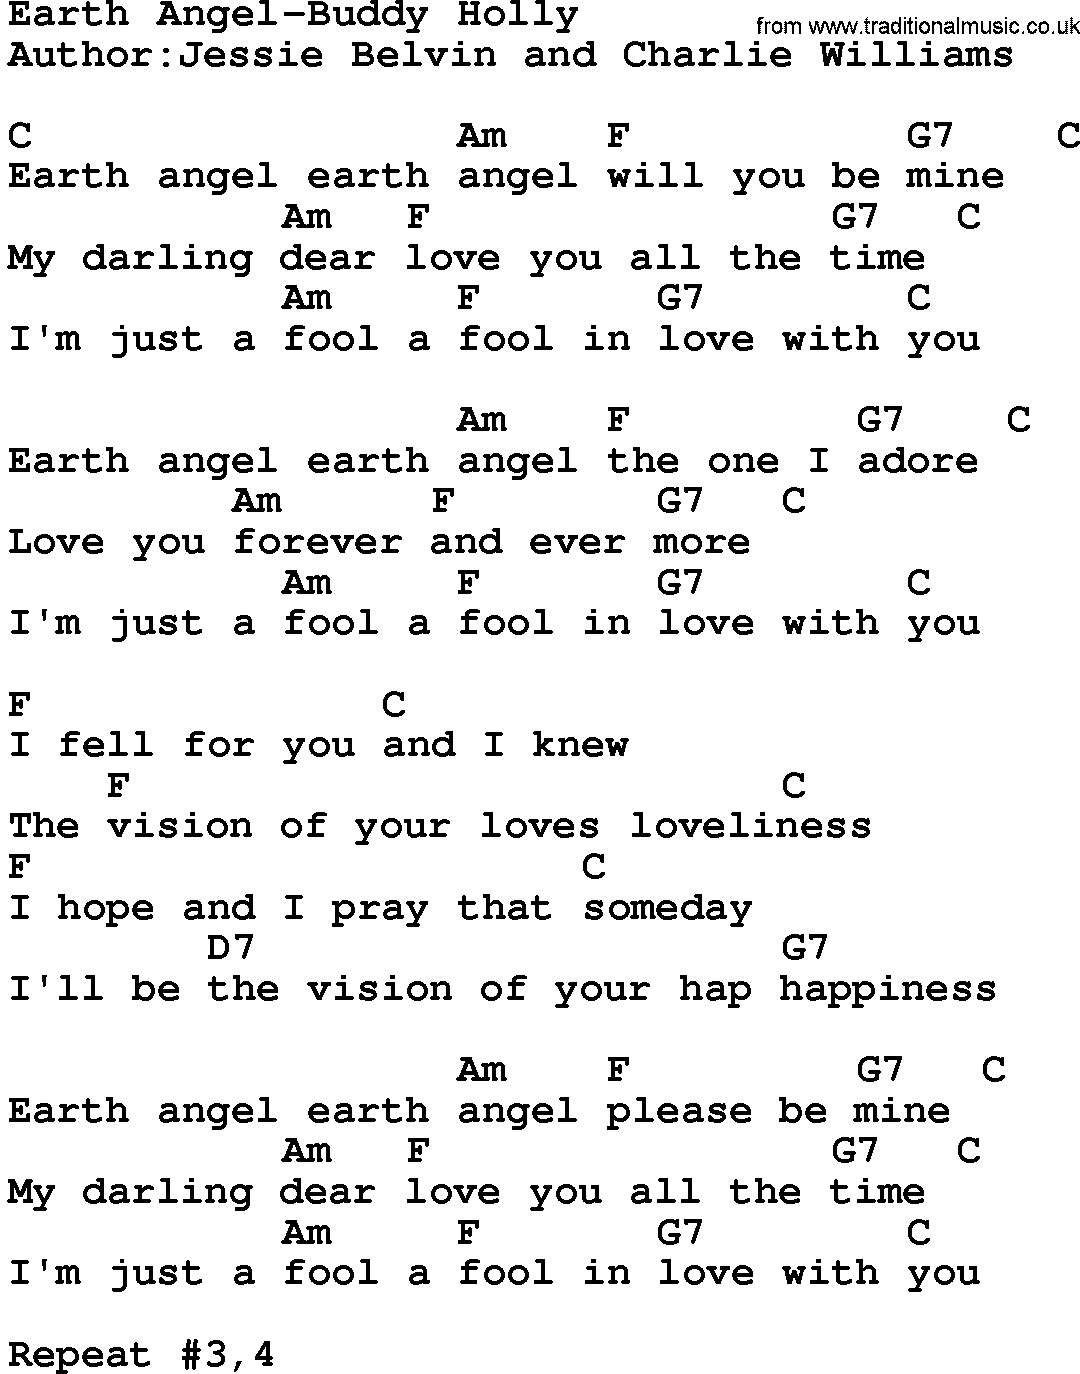 Country Musicearth Angel Buddy Holly Lyrics And Chords